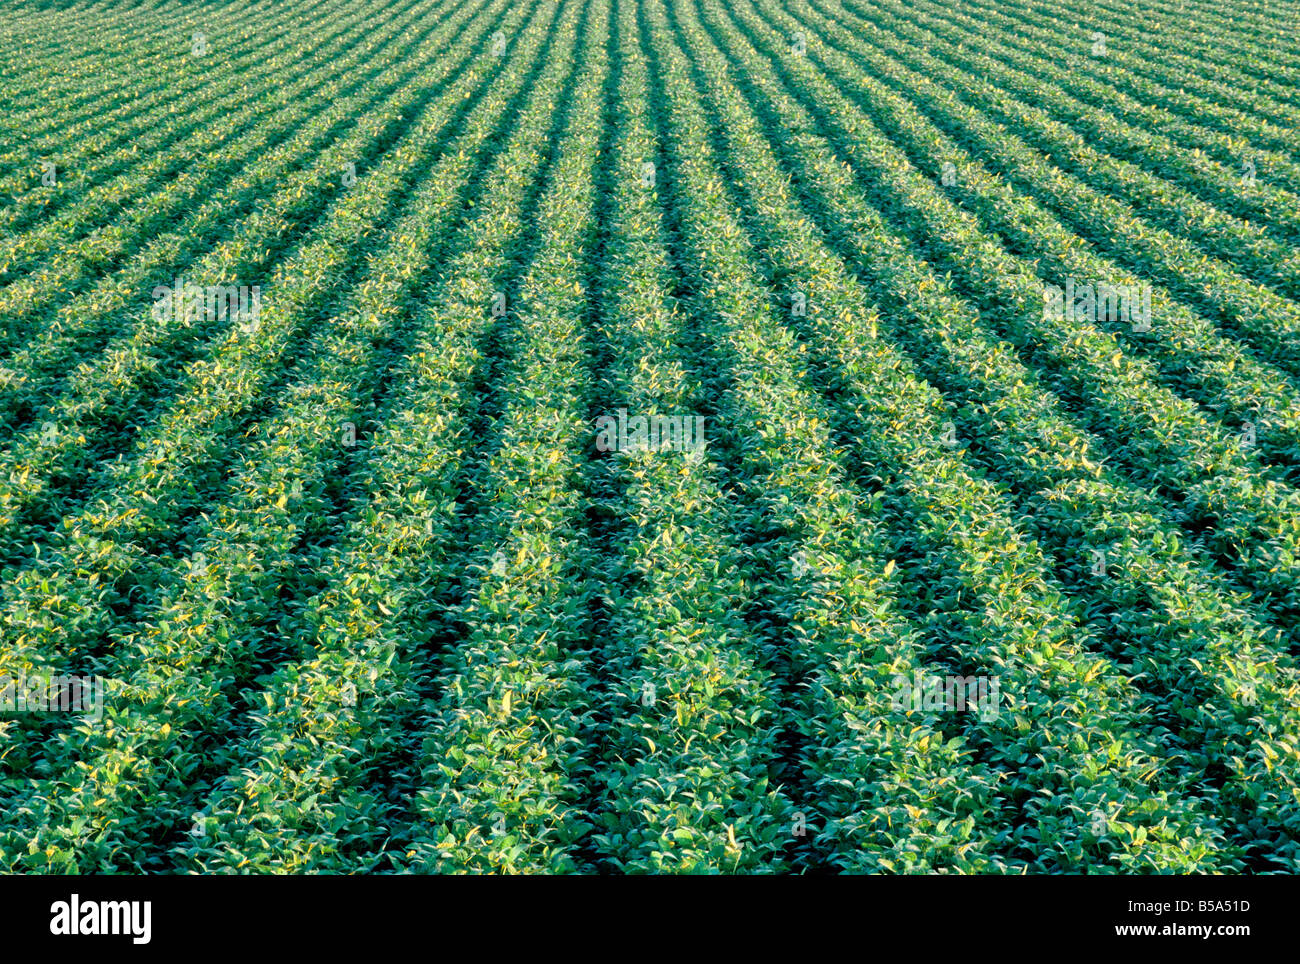 Roundup Ready Soja Feld. Stockbild